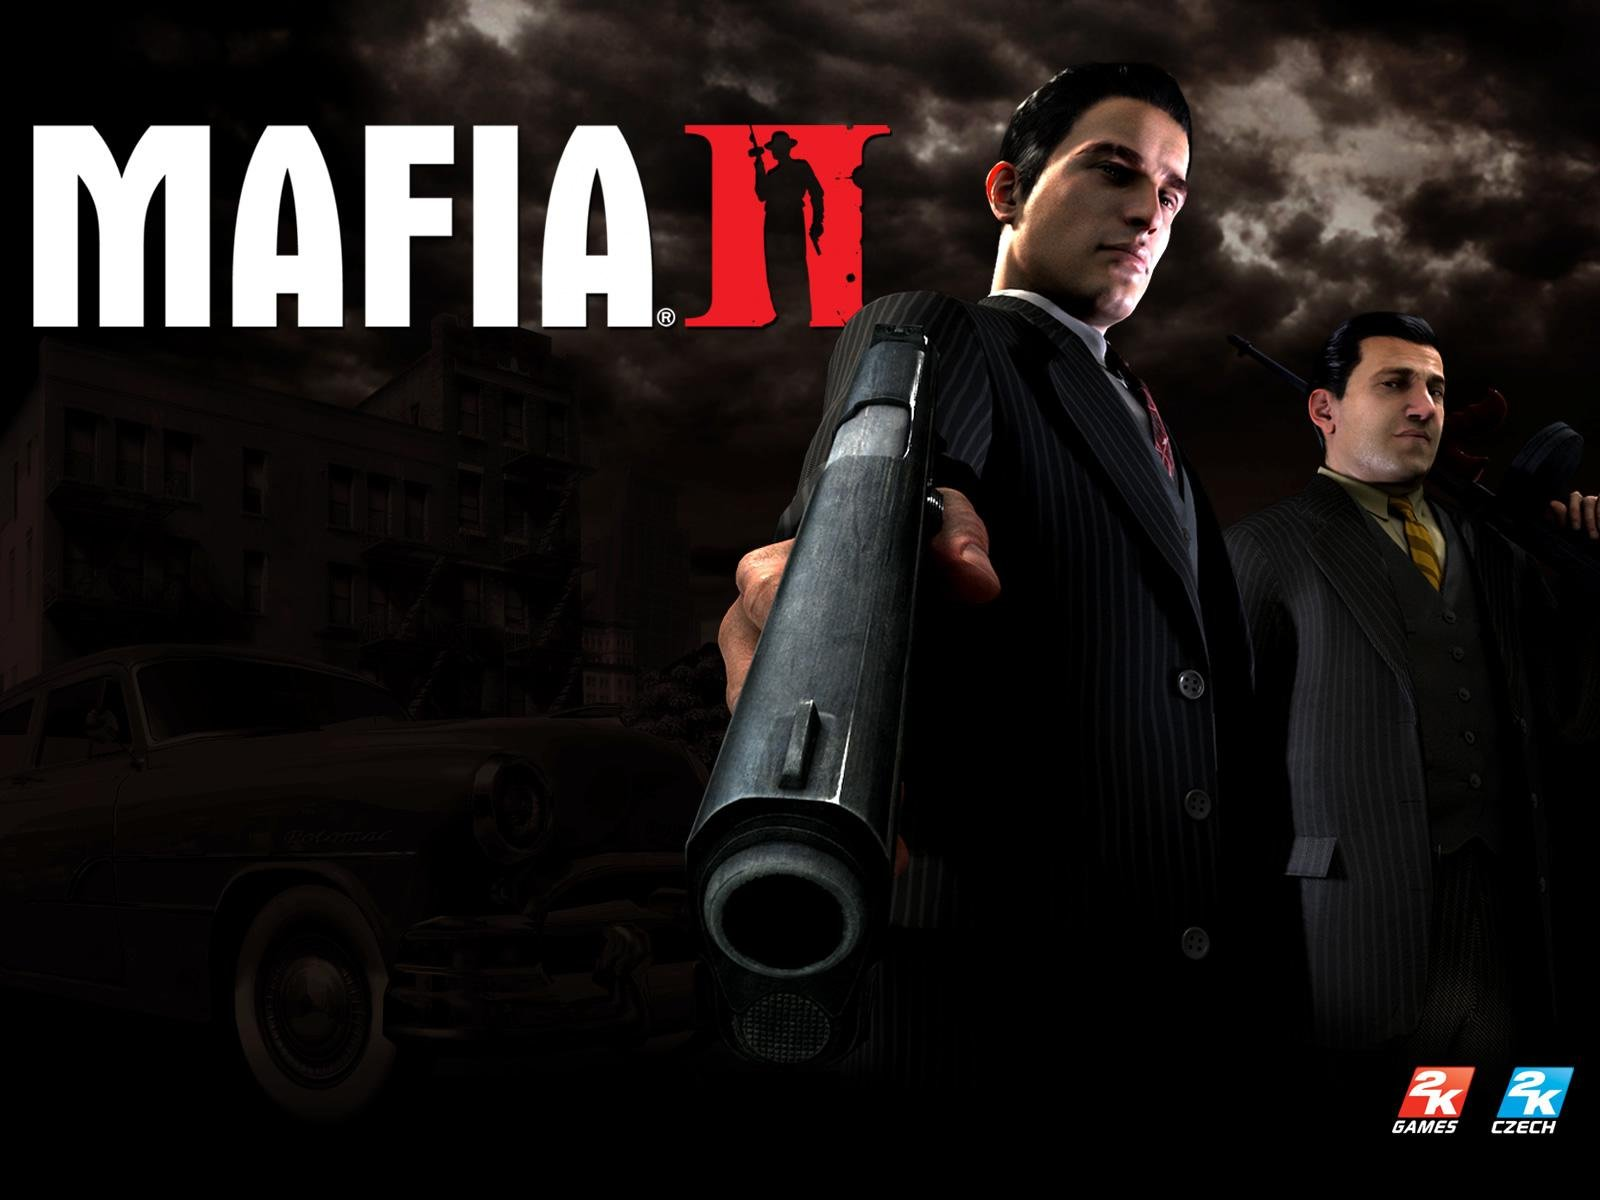 Боевика Mafia 2. По словам президента UNICO National Андрэ Димино